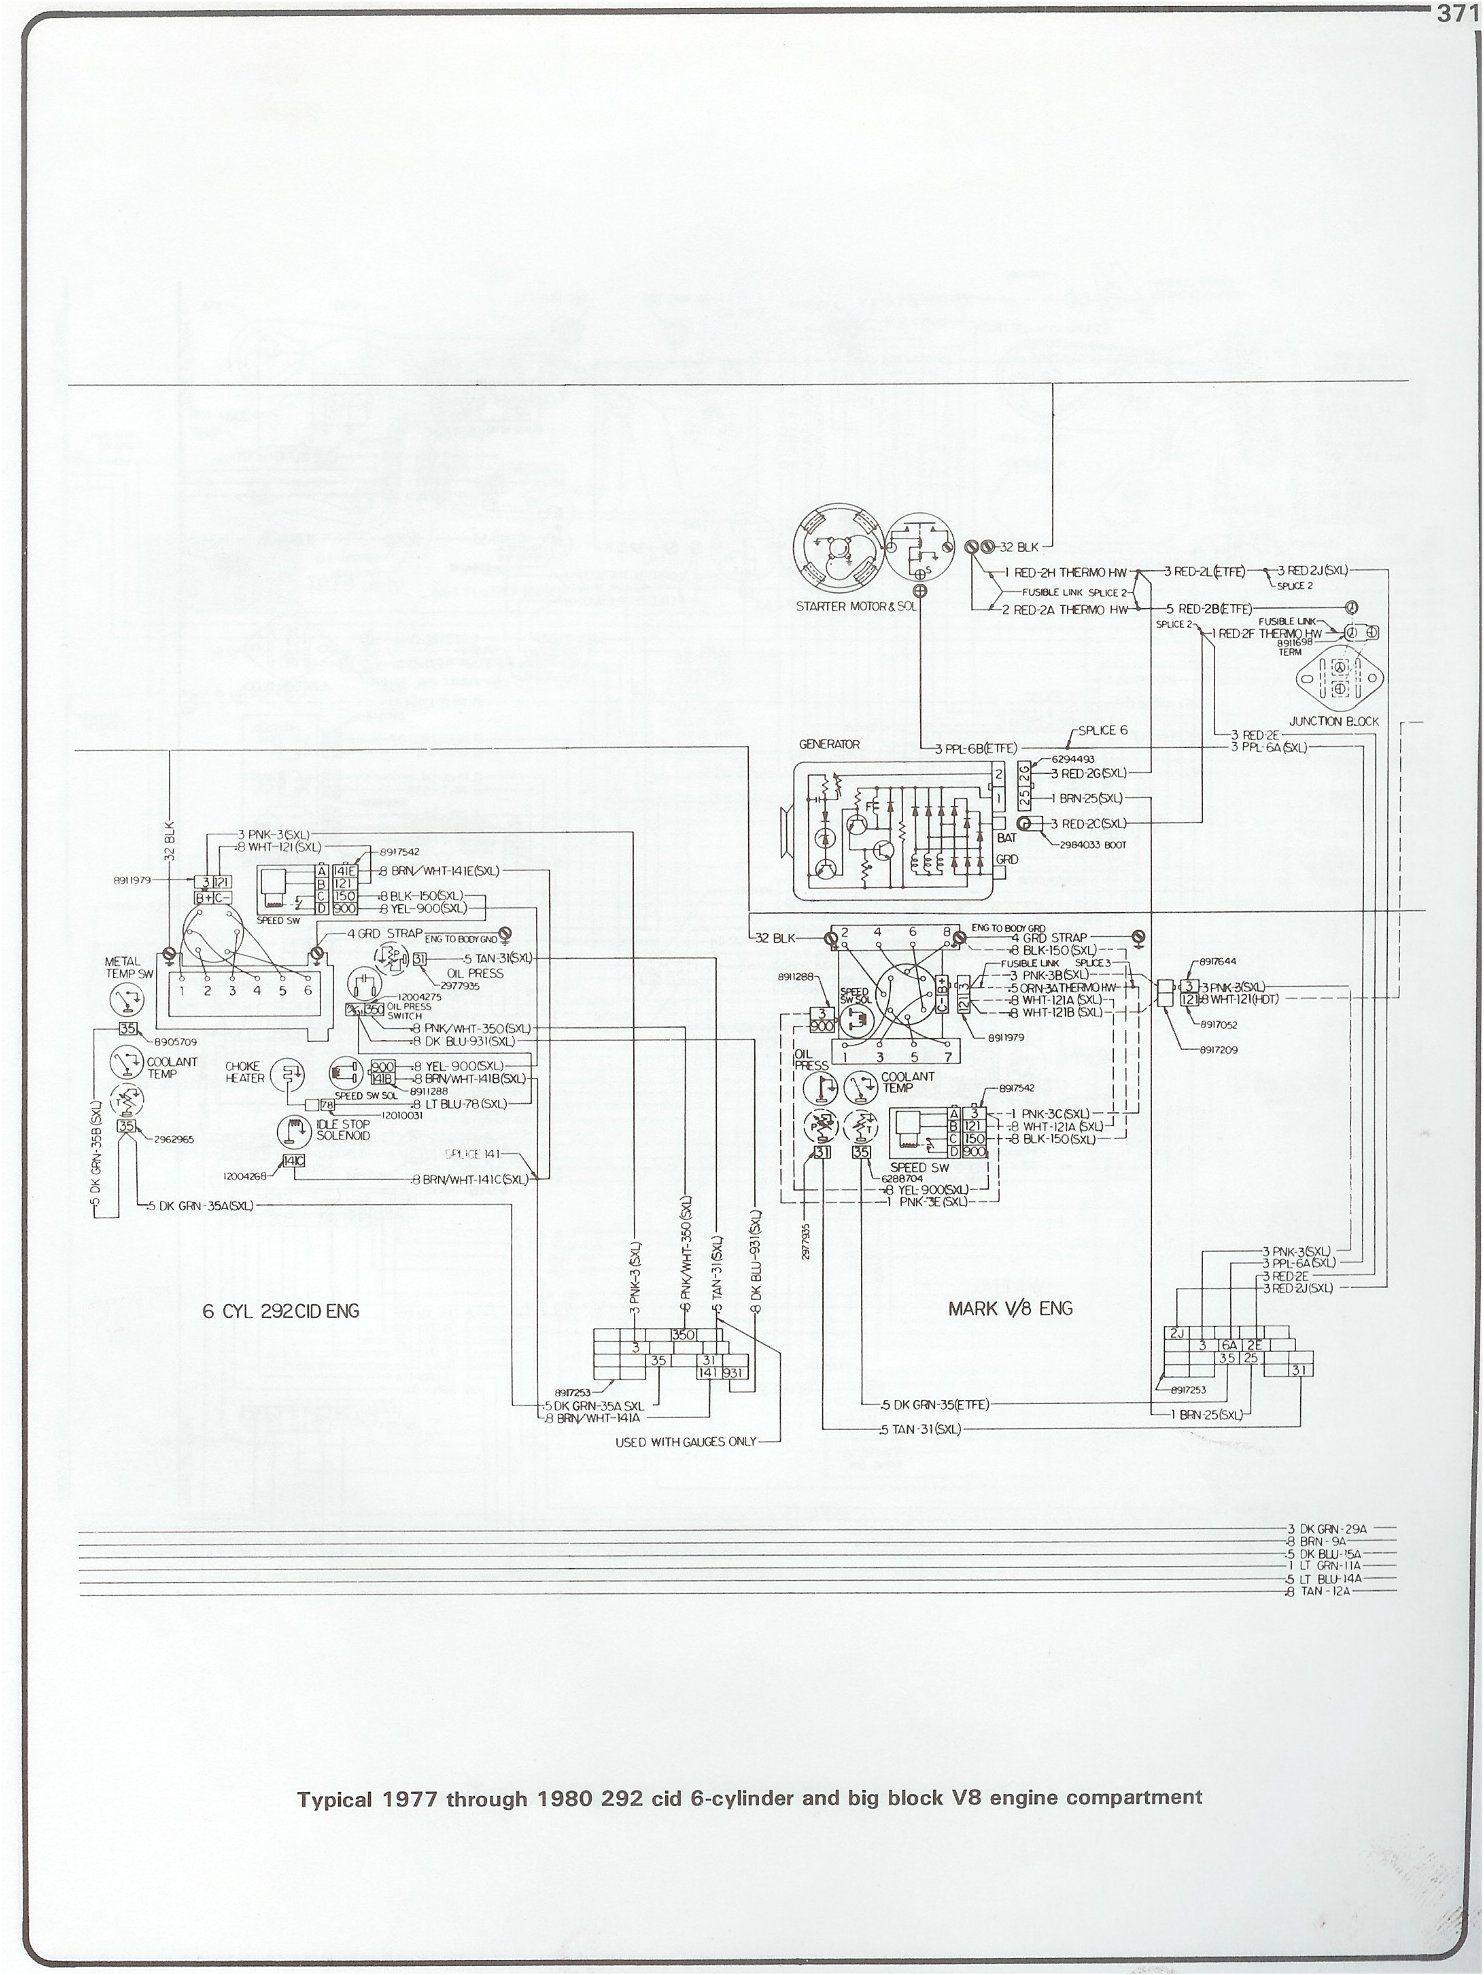 1983 chevy truck wiring diagram package ac 350 k10